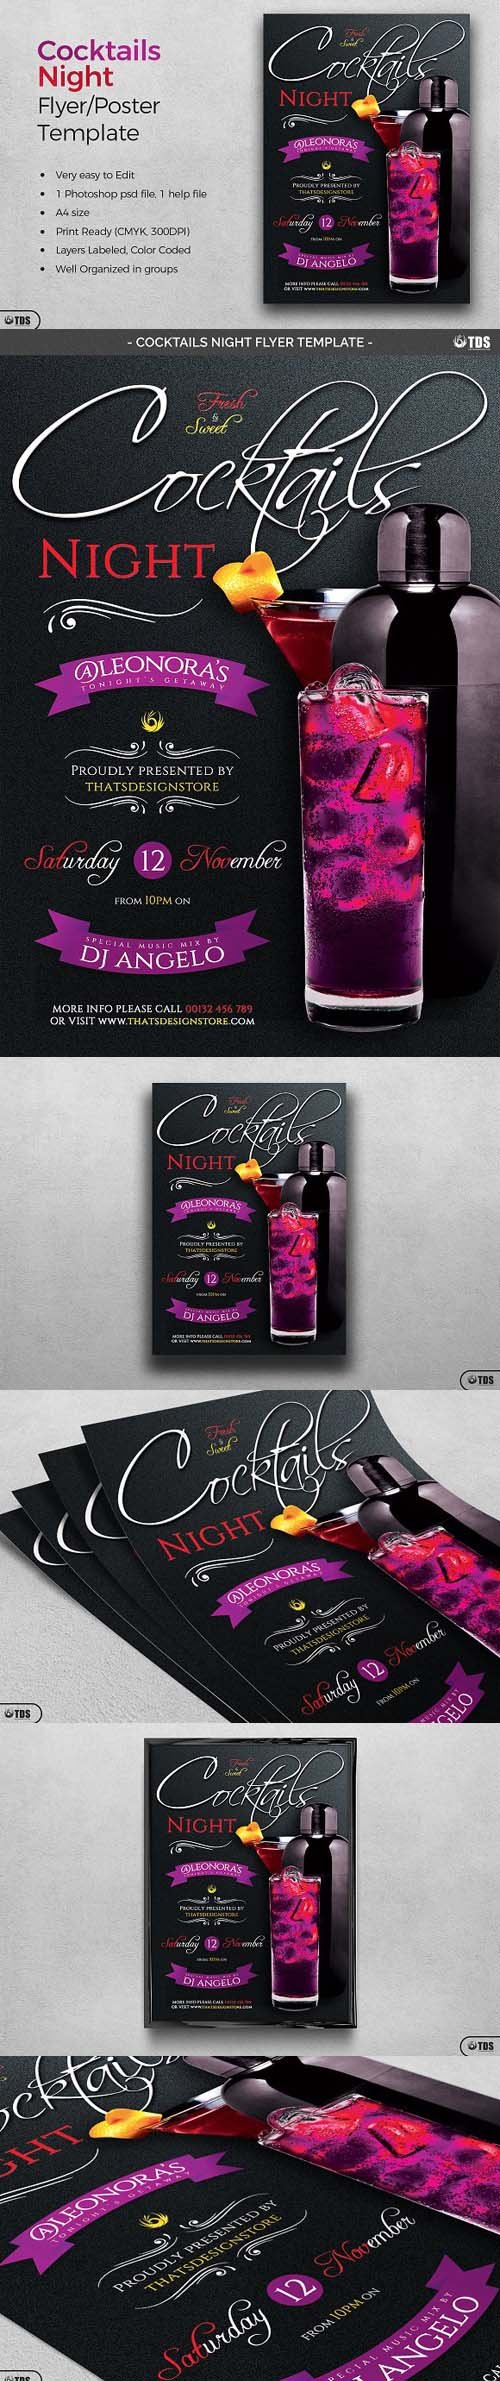 CM - Cocktails Night Flyer Template 1370012